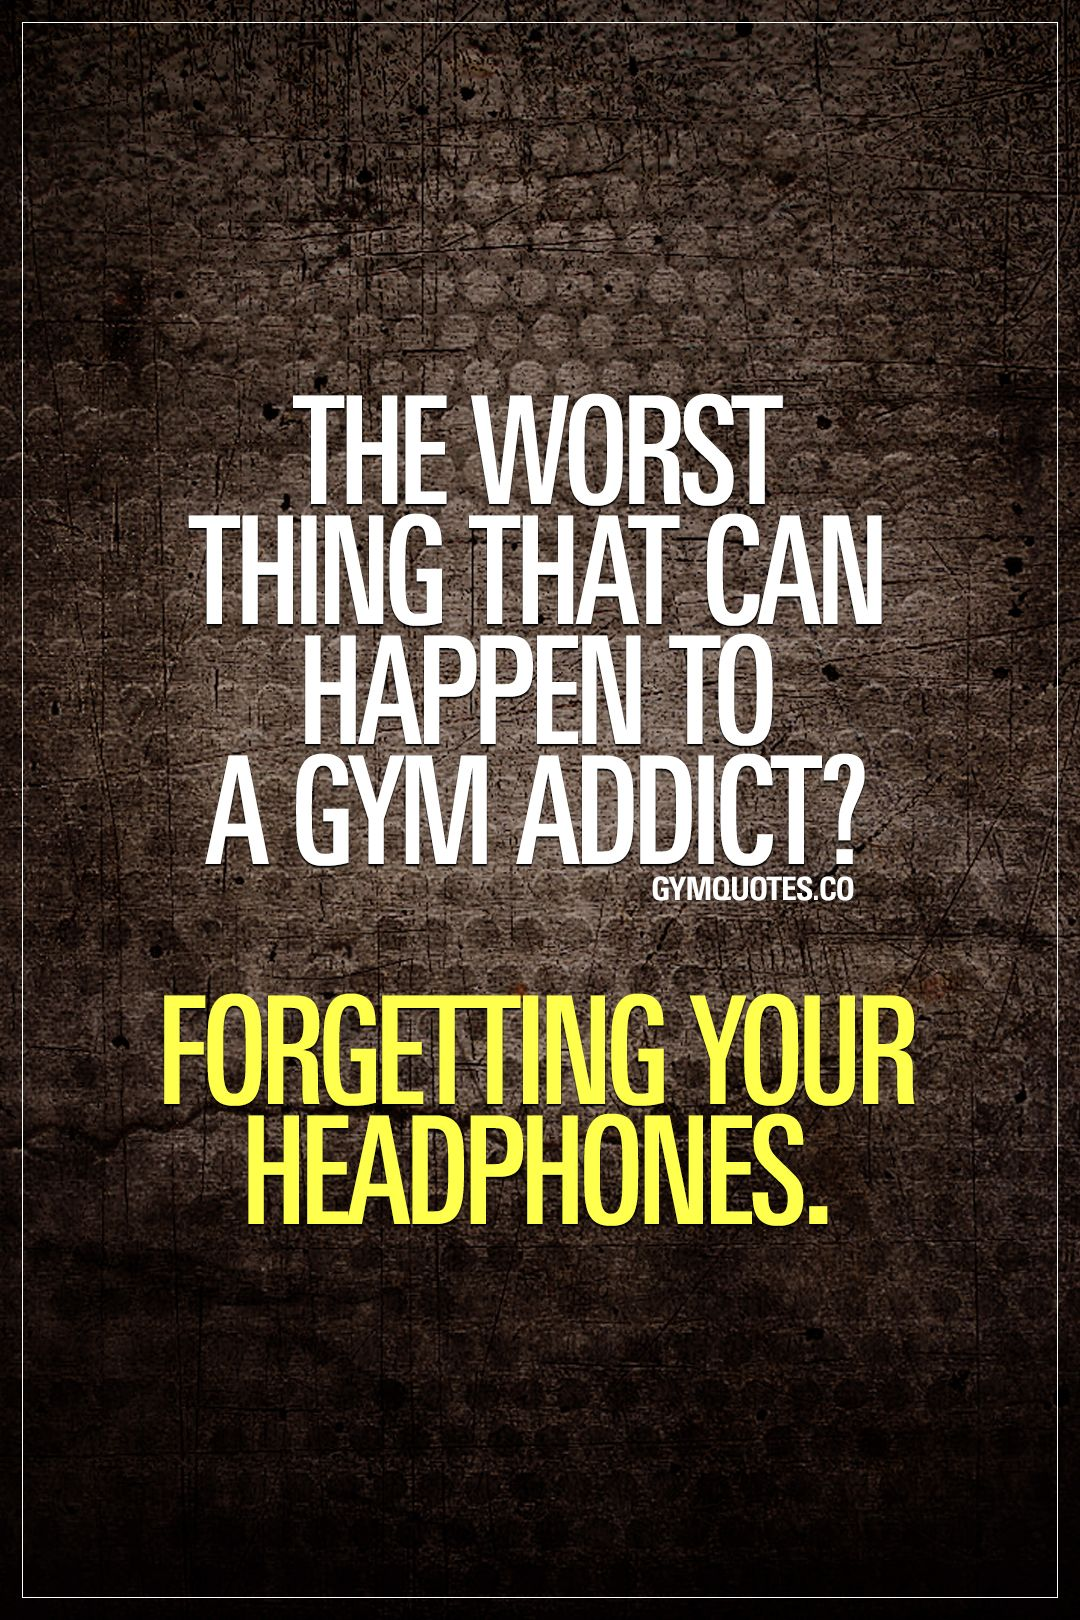 Funny Gym Quotes | The Worst Thing That Can Happen To A Gym Addict Forgetting Your